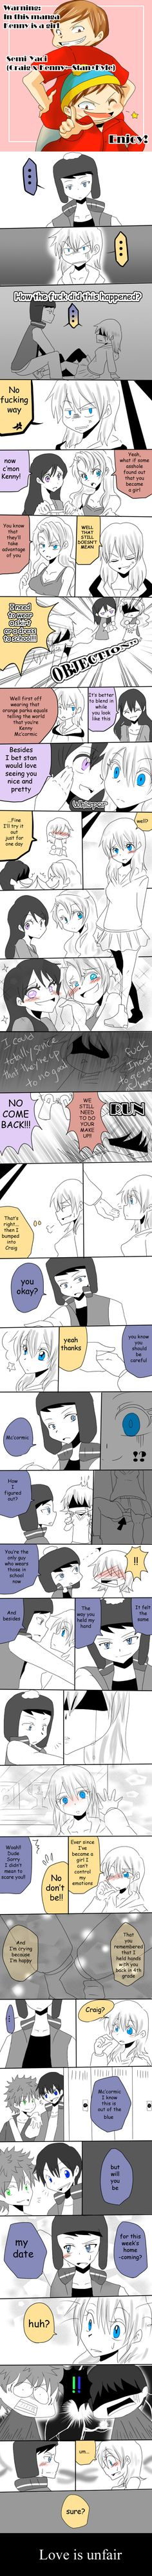 PART 4: it's southpark deal with it 4 by mamepika